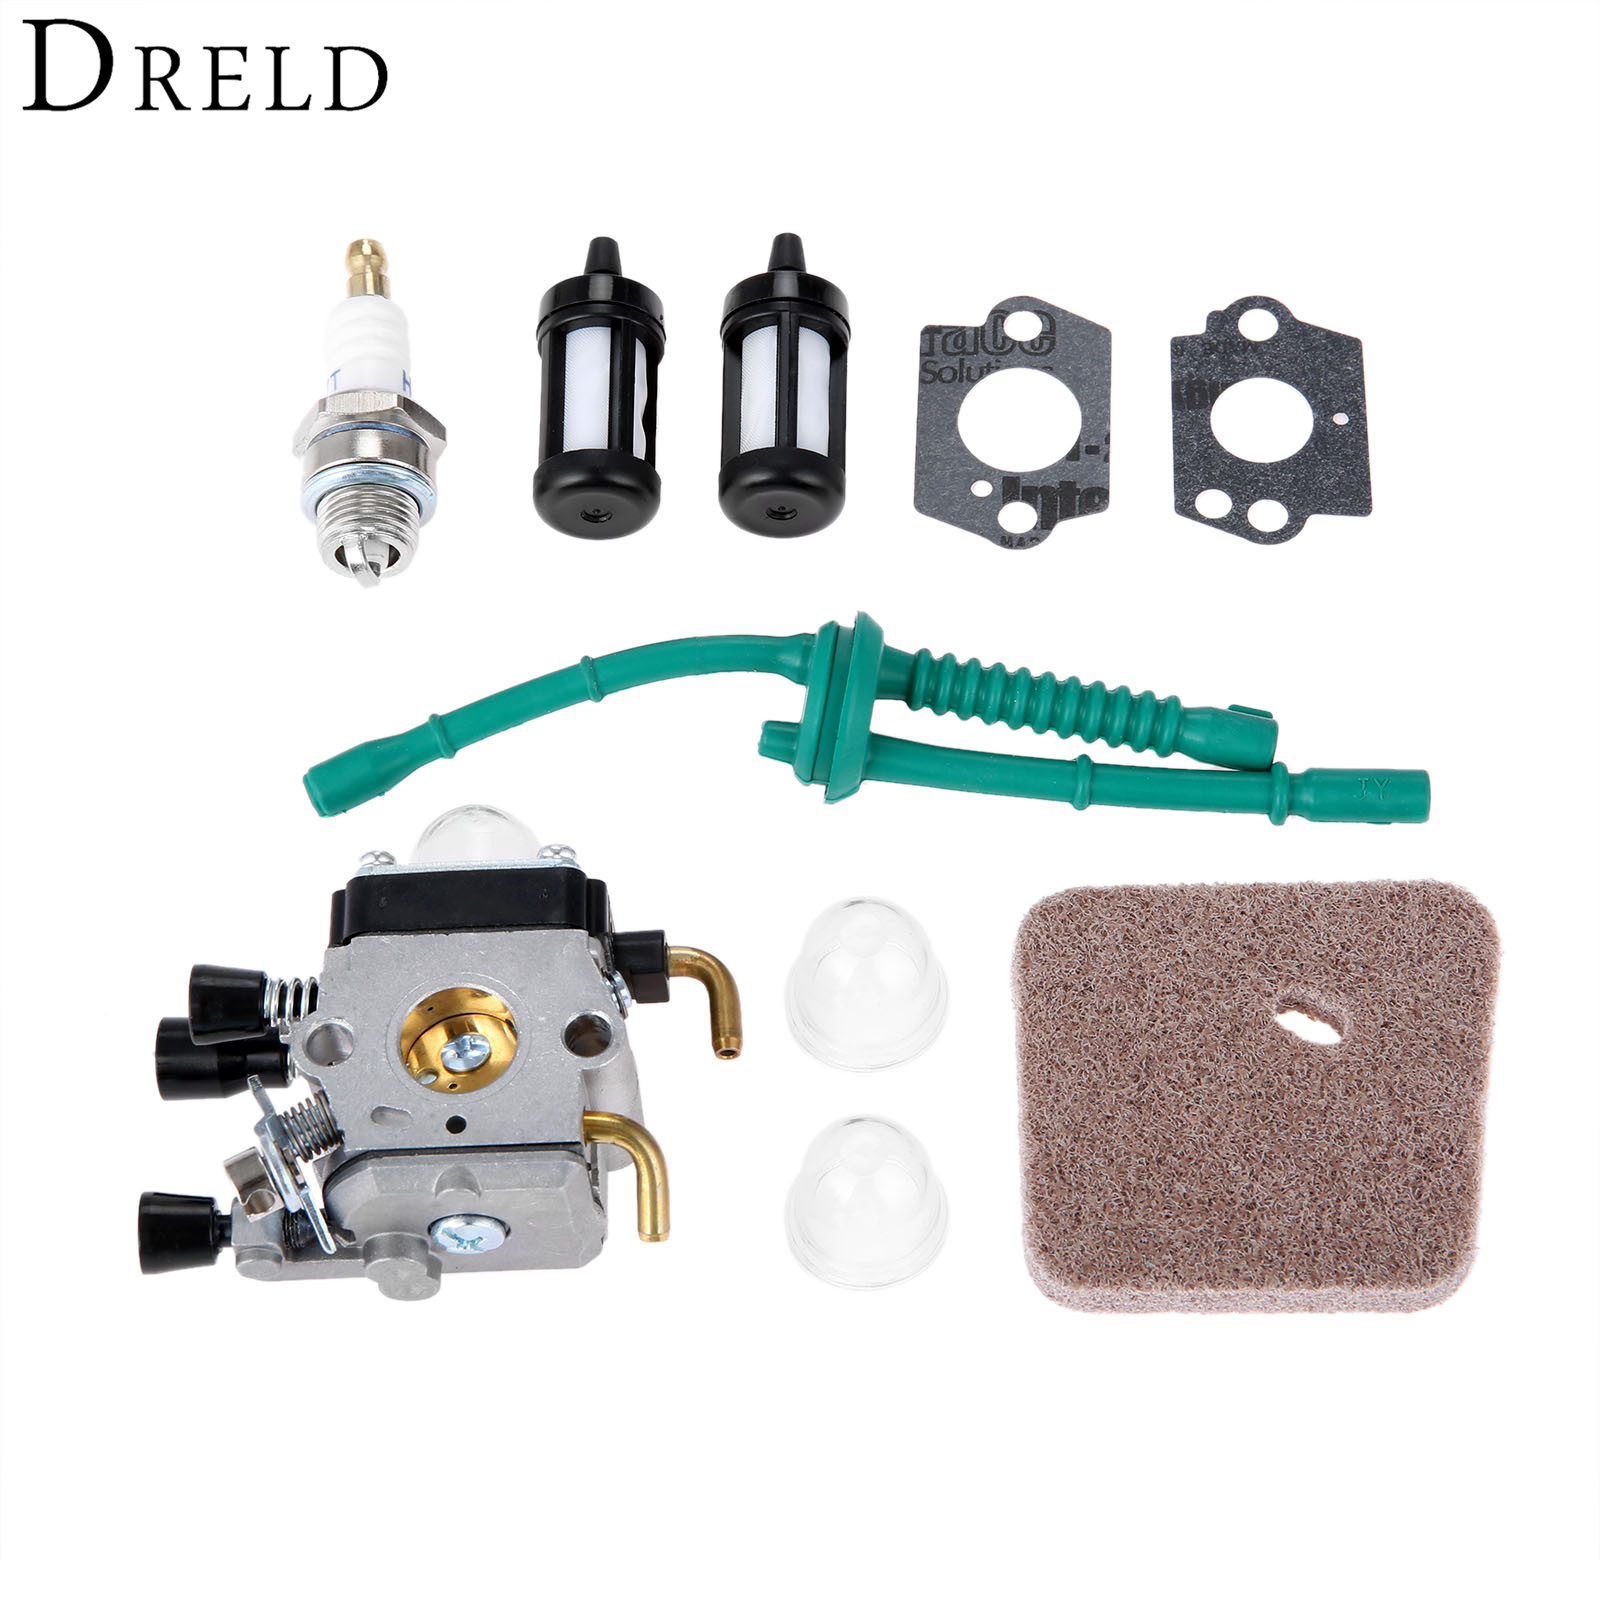 DRELD <font><b>Carburetor</b></font> Air Fuel Filter Spark Plug Carb Kit <font><b>For</b></font> <font><b>STIHL</b></font> <font><b>FS38</b></font> <font><b>FS45</b></font> FS46 FS55 FS55R FS55RC KM55 FS45C FS55T Trimmers Cutter image